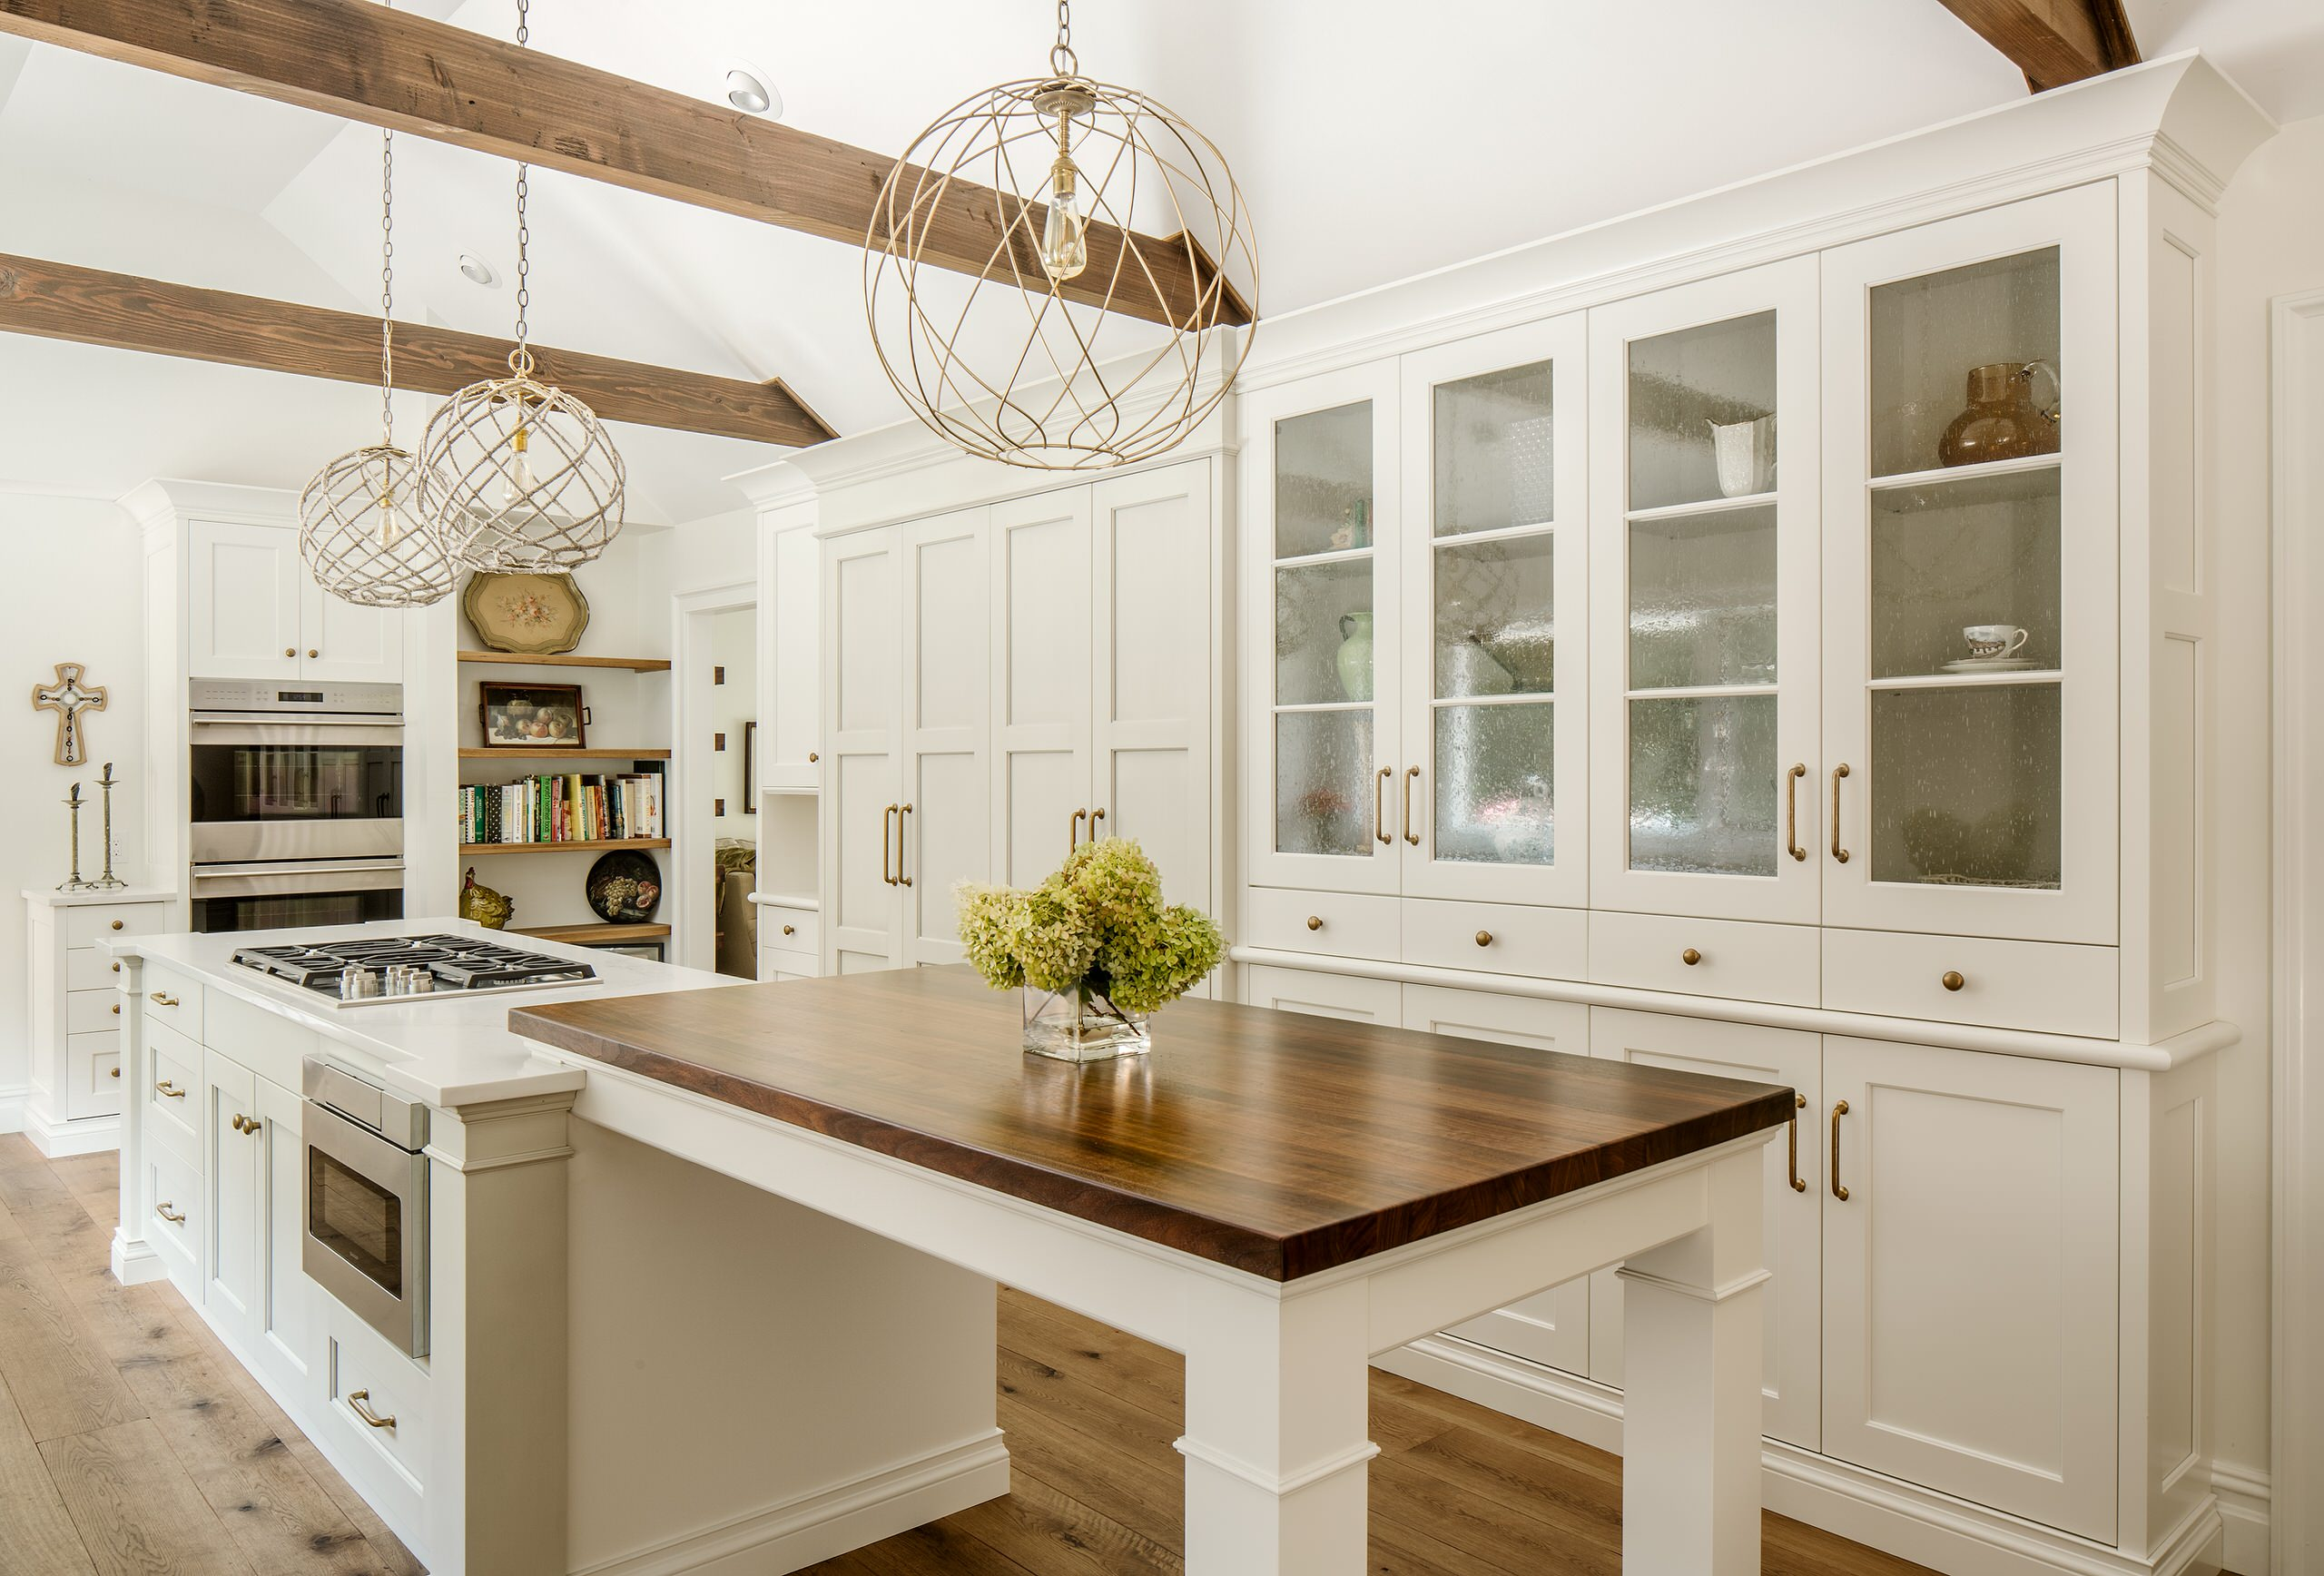 75 Beautiful Farmhouse Kitchen With Quartz Countertops Pictures Ideas December 2020 Houzz